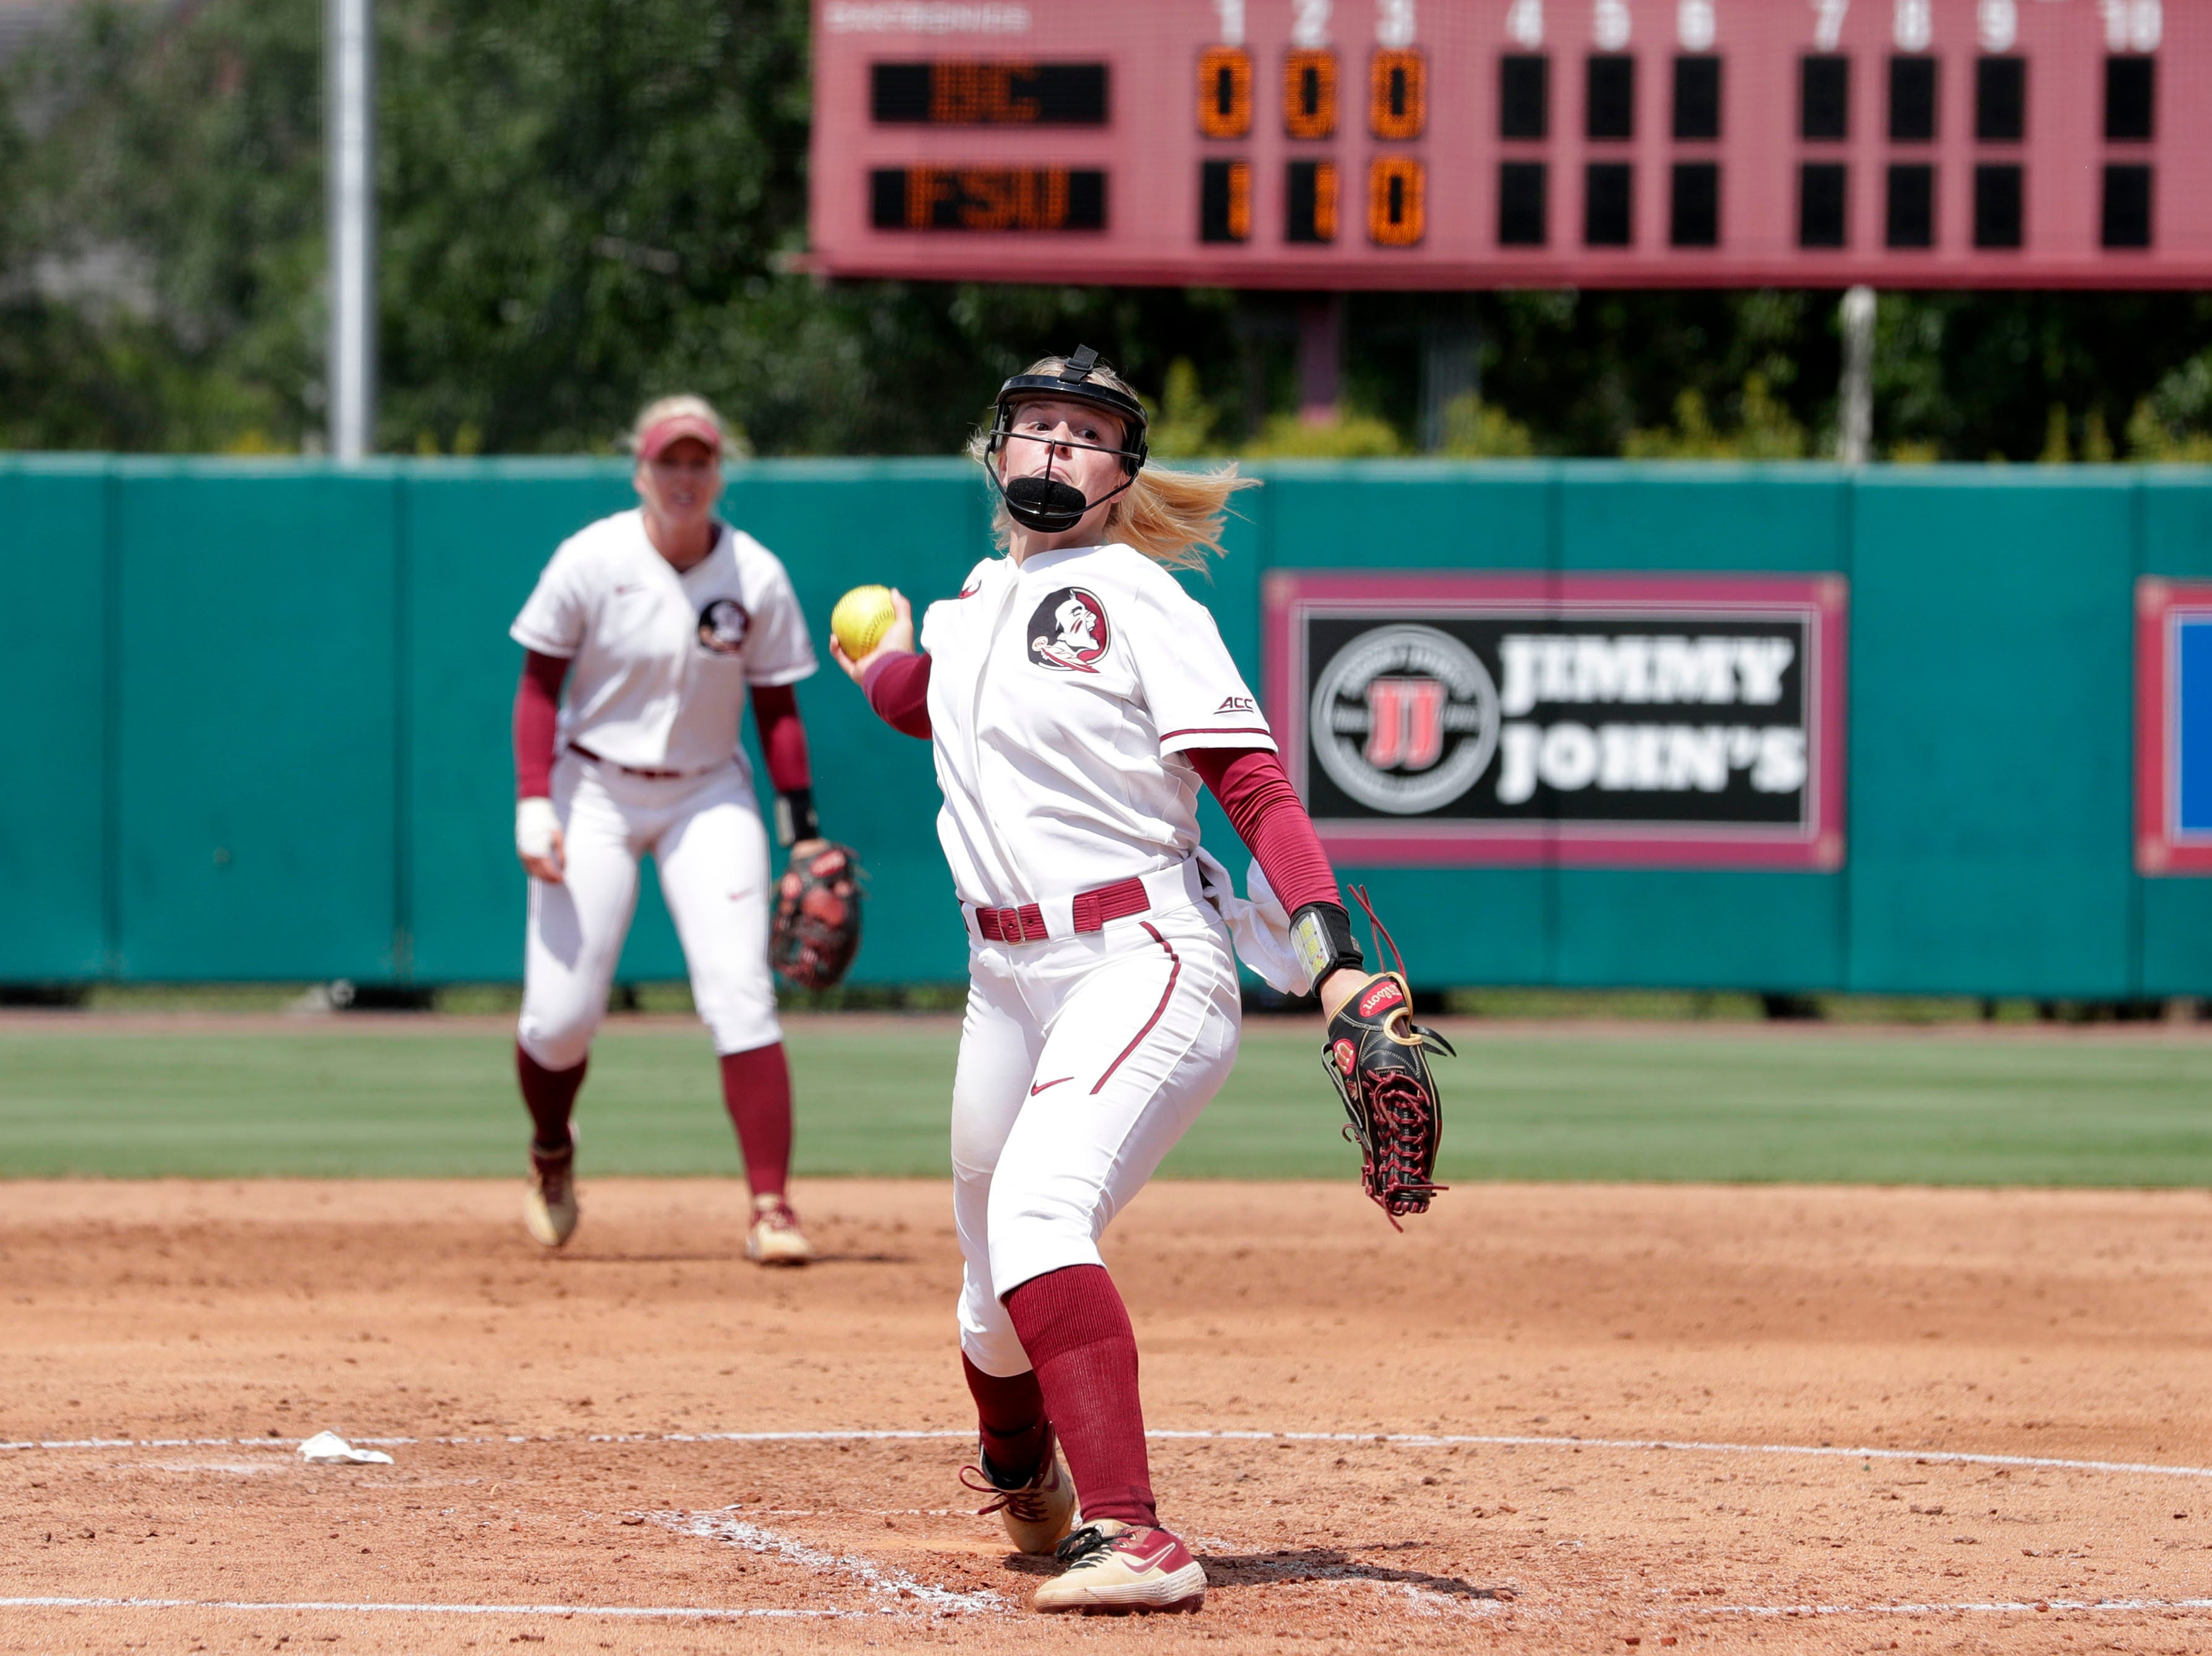 Florida State Seminoles outfielder Sabrina Stutsman (21) pitches to the batter. The Florida State Seminoles host the Bethune-Cookman Wildcats in the first round of the NCAA Regional Playoffs Friday, May 17, 2019.